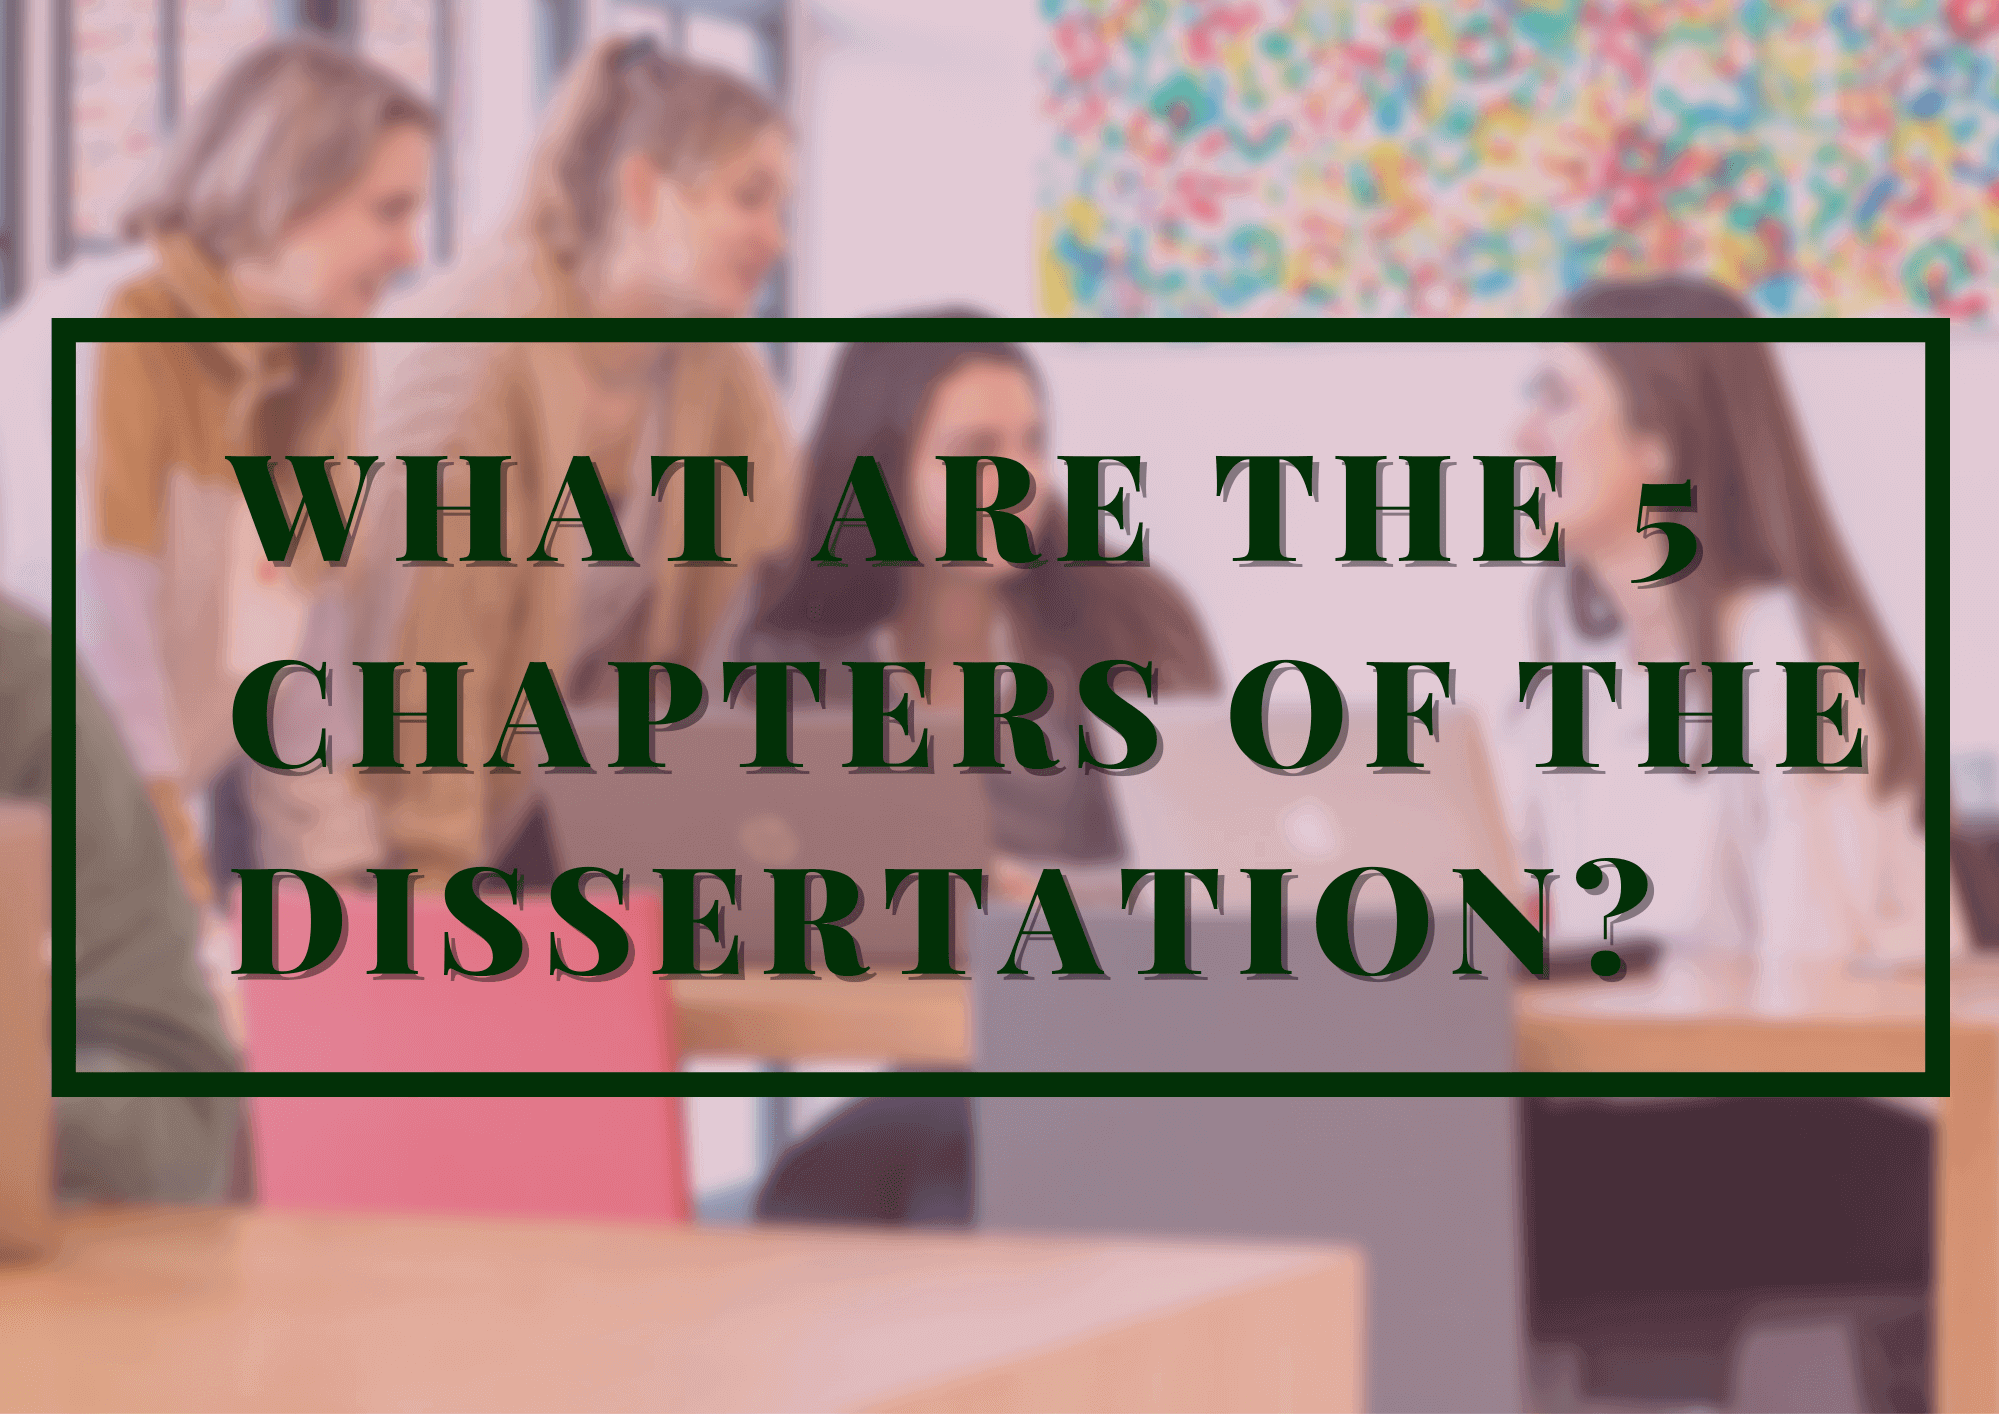 What-are-the-5-chapters-of-the-dissertation